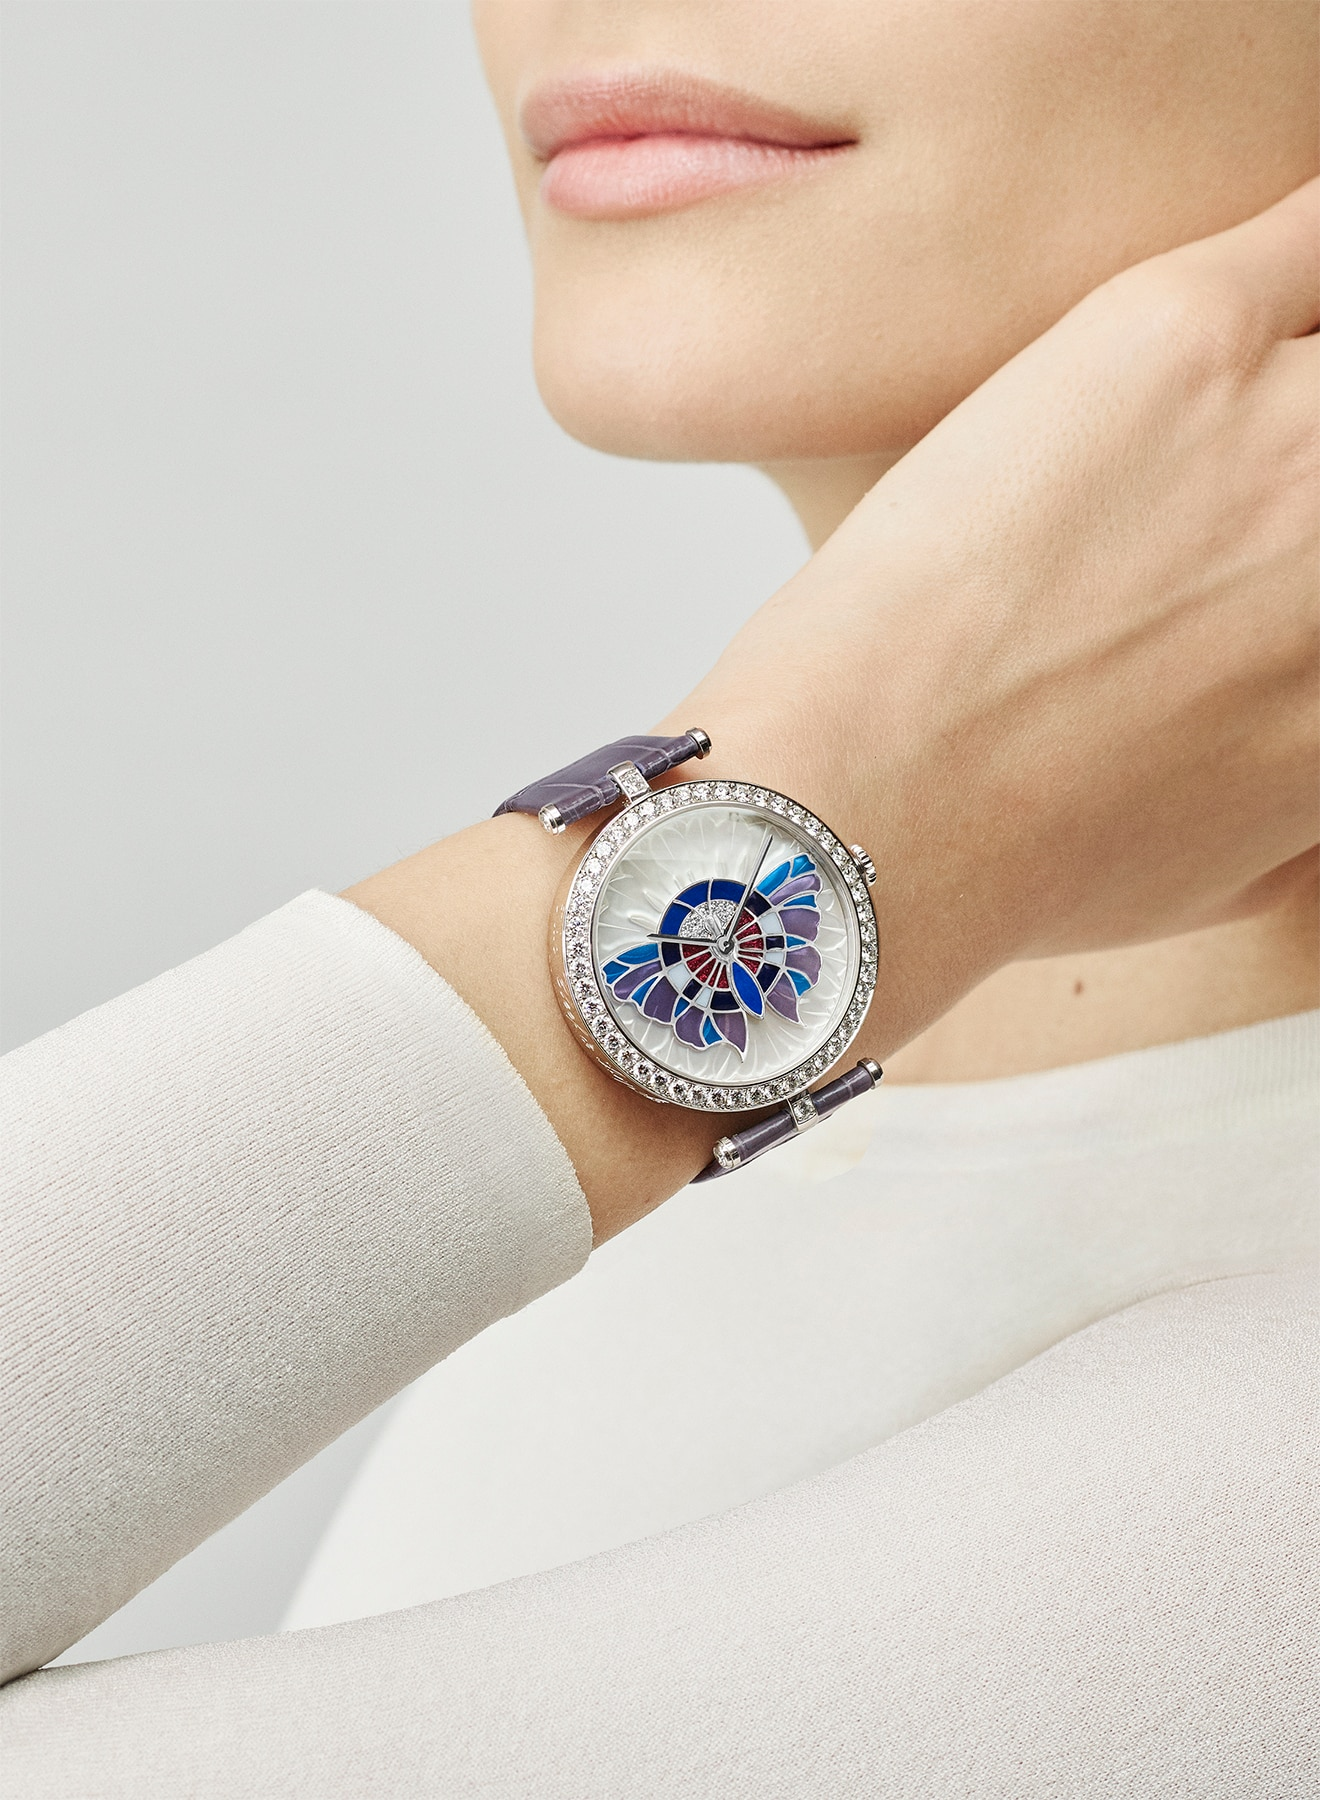 Extraordinary Dials collection, watch, white gold, diamonds and mother-of-pearl, hand resting on neck, Van Cleef & Arpels